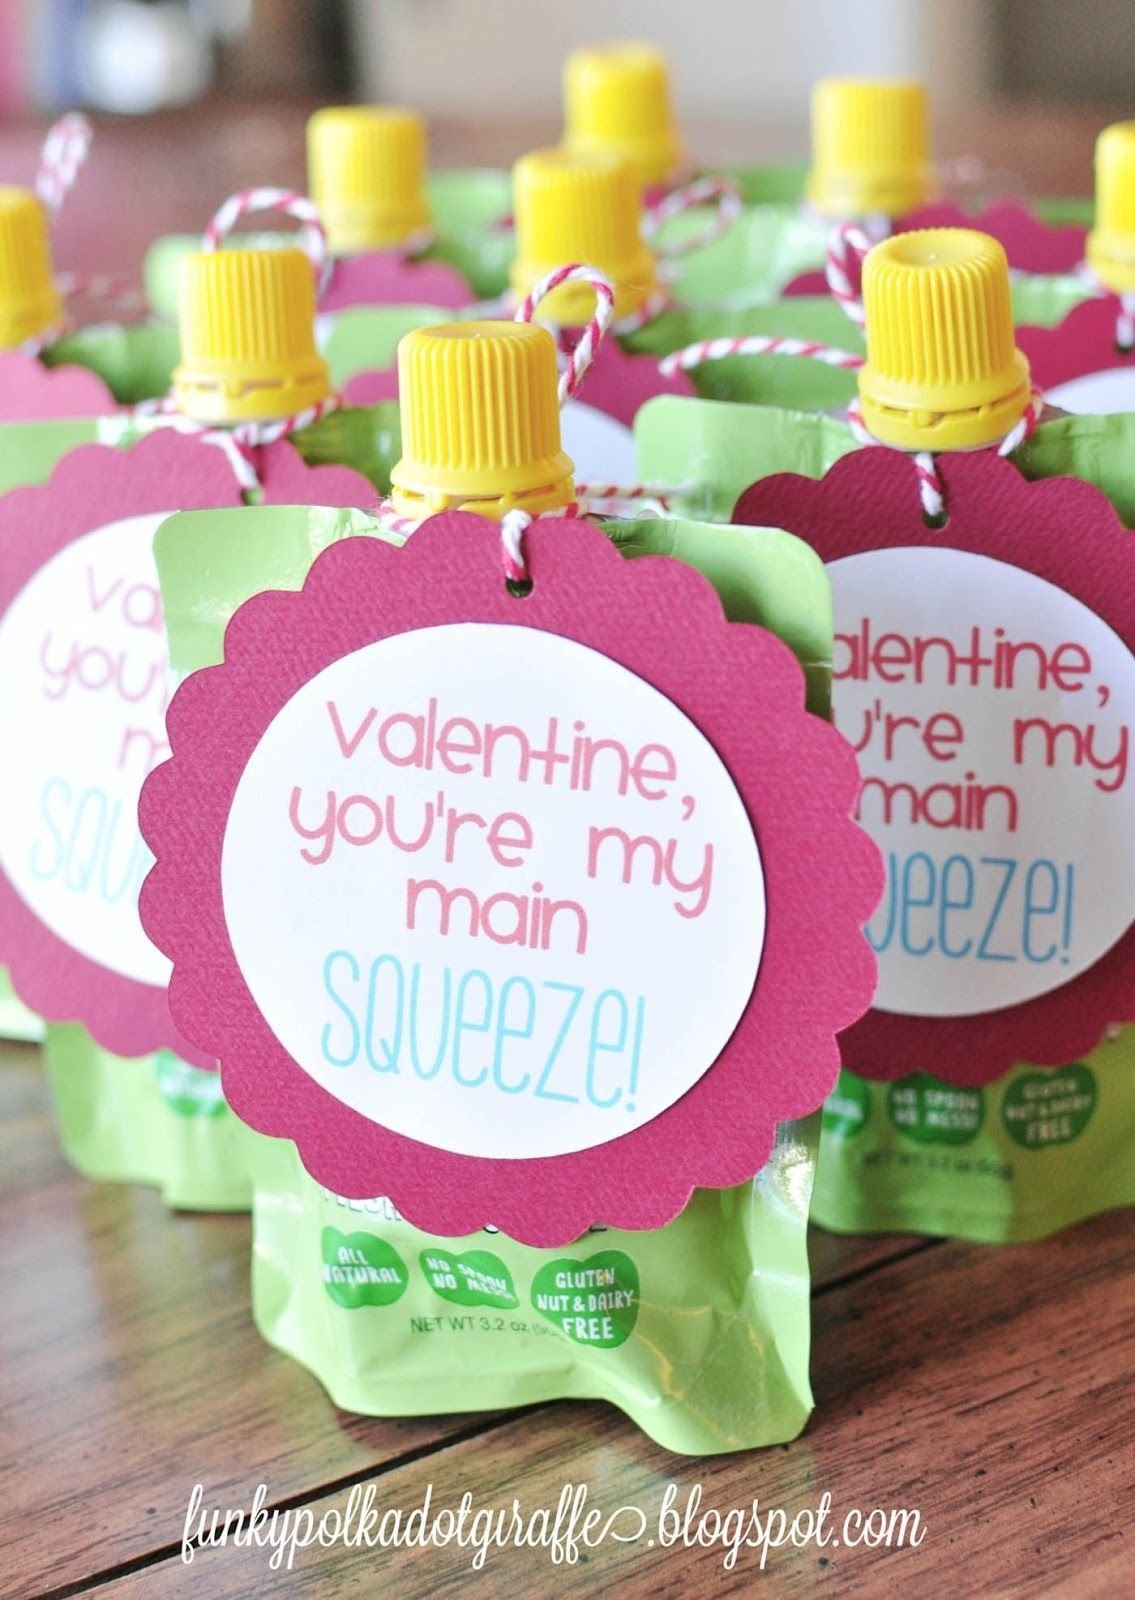 10 Great Valentines Gift Ideas For Mom preschool valentines this is a great idea i wish we could boycott 2021